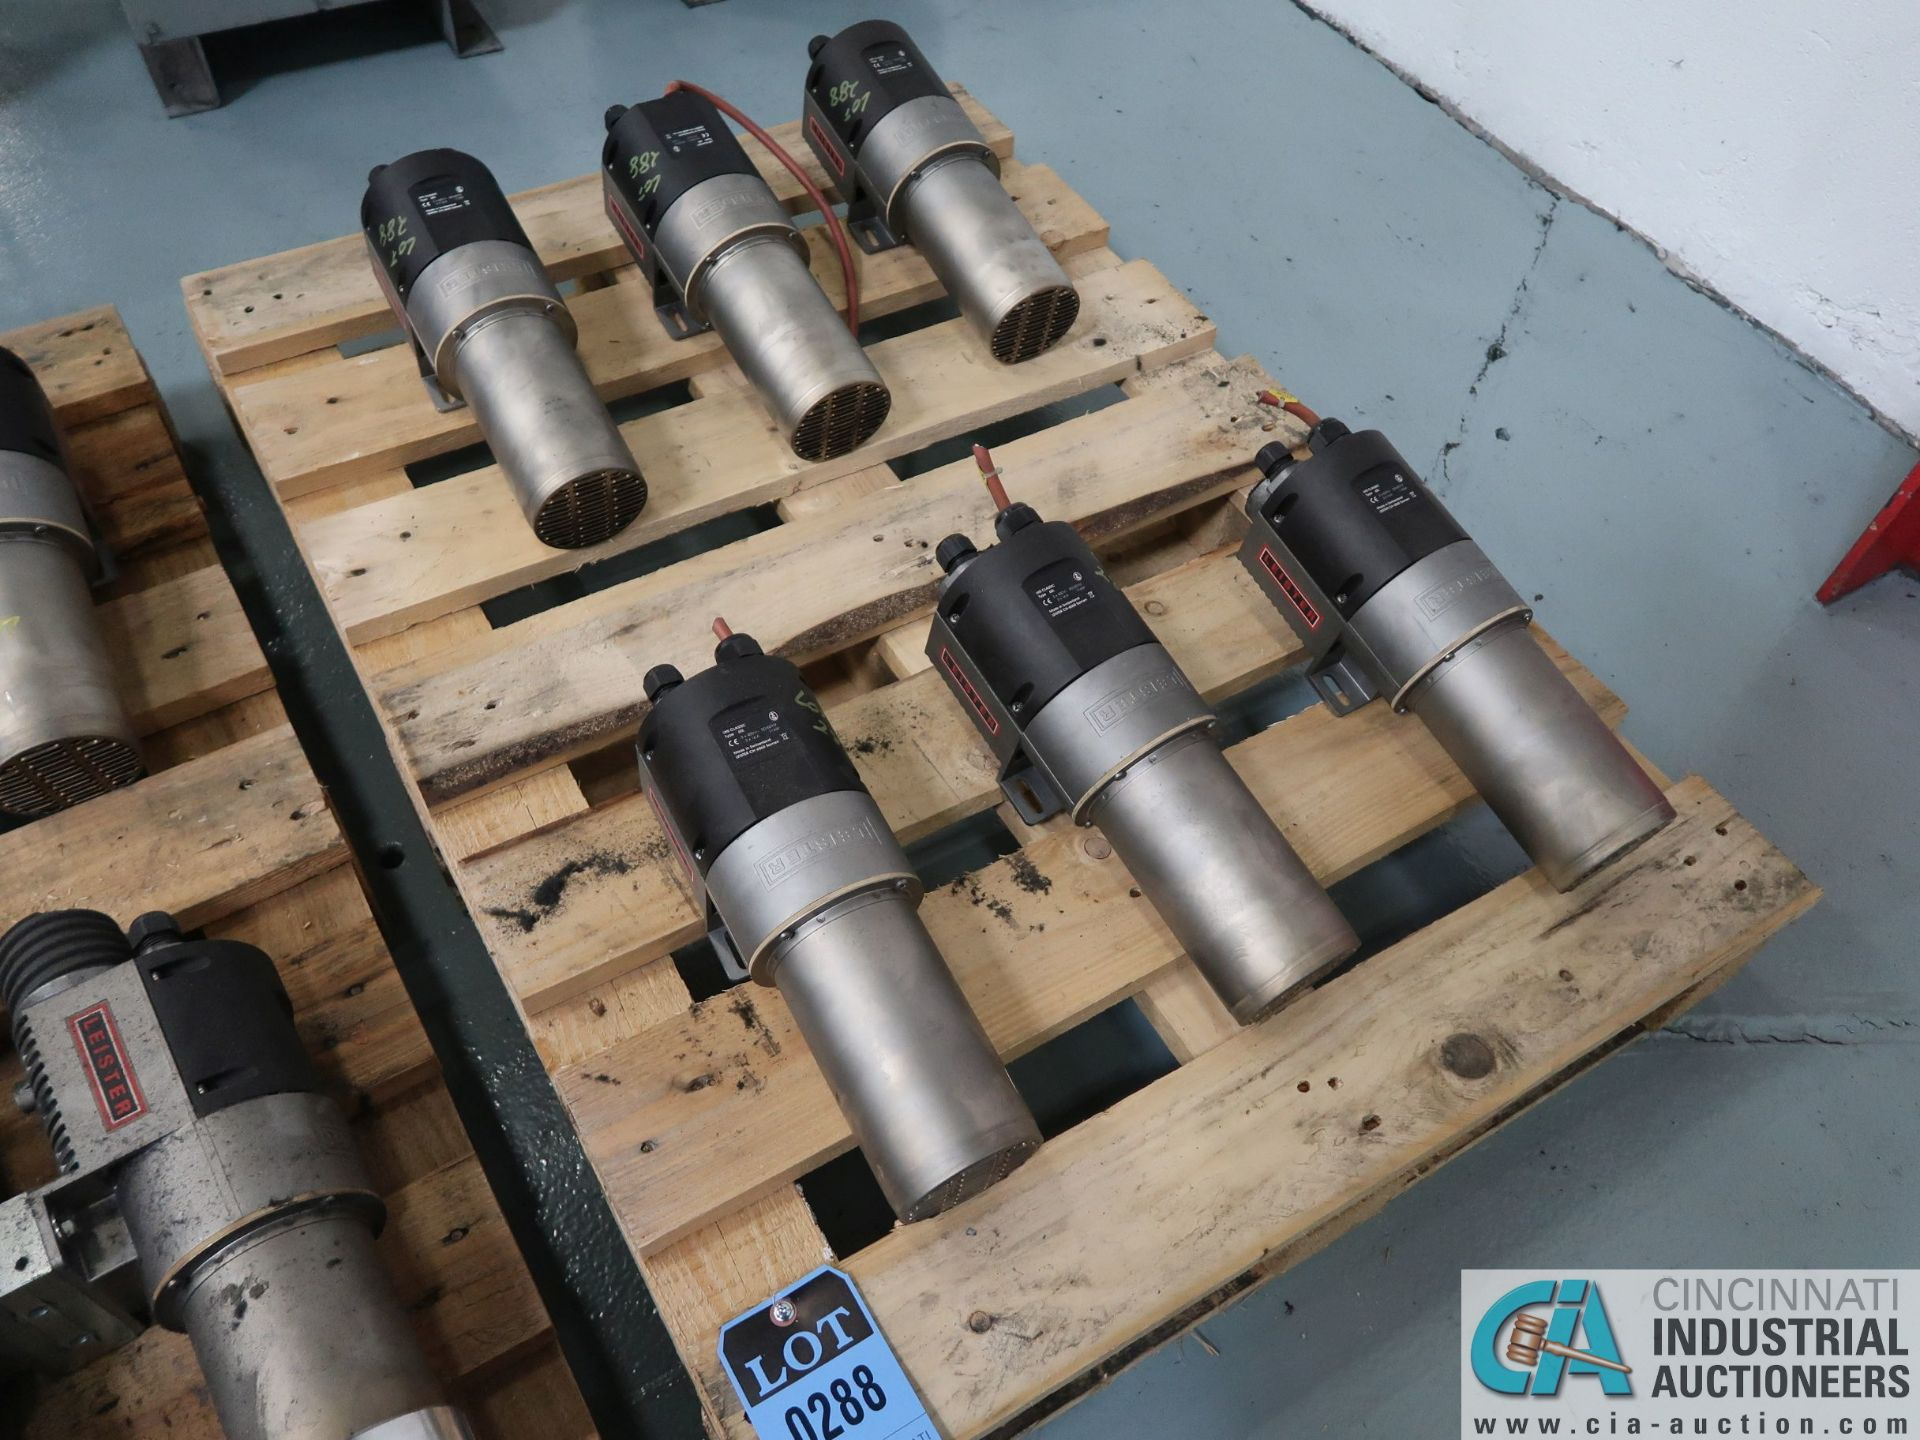 Lot 288 - 11 KW LEISTER BLOWER MOTORS *$25.00 RIGGING FEE DUE TO INDUSTRIAL SERVICES AND SALES*